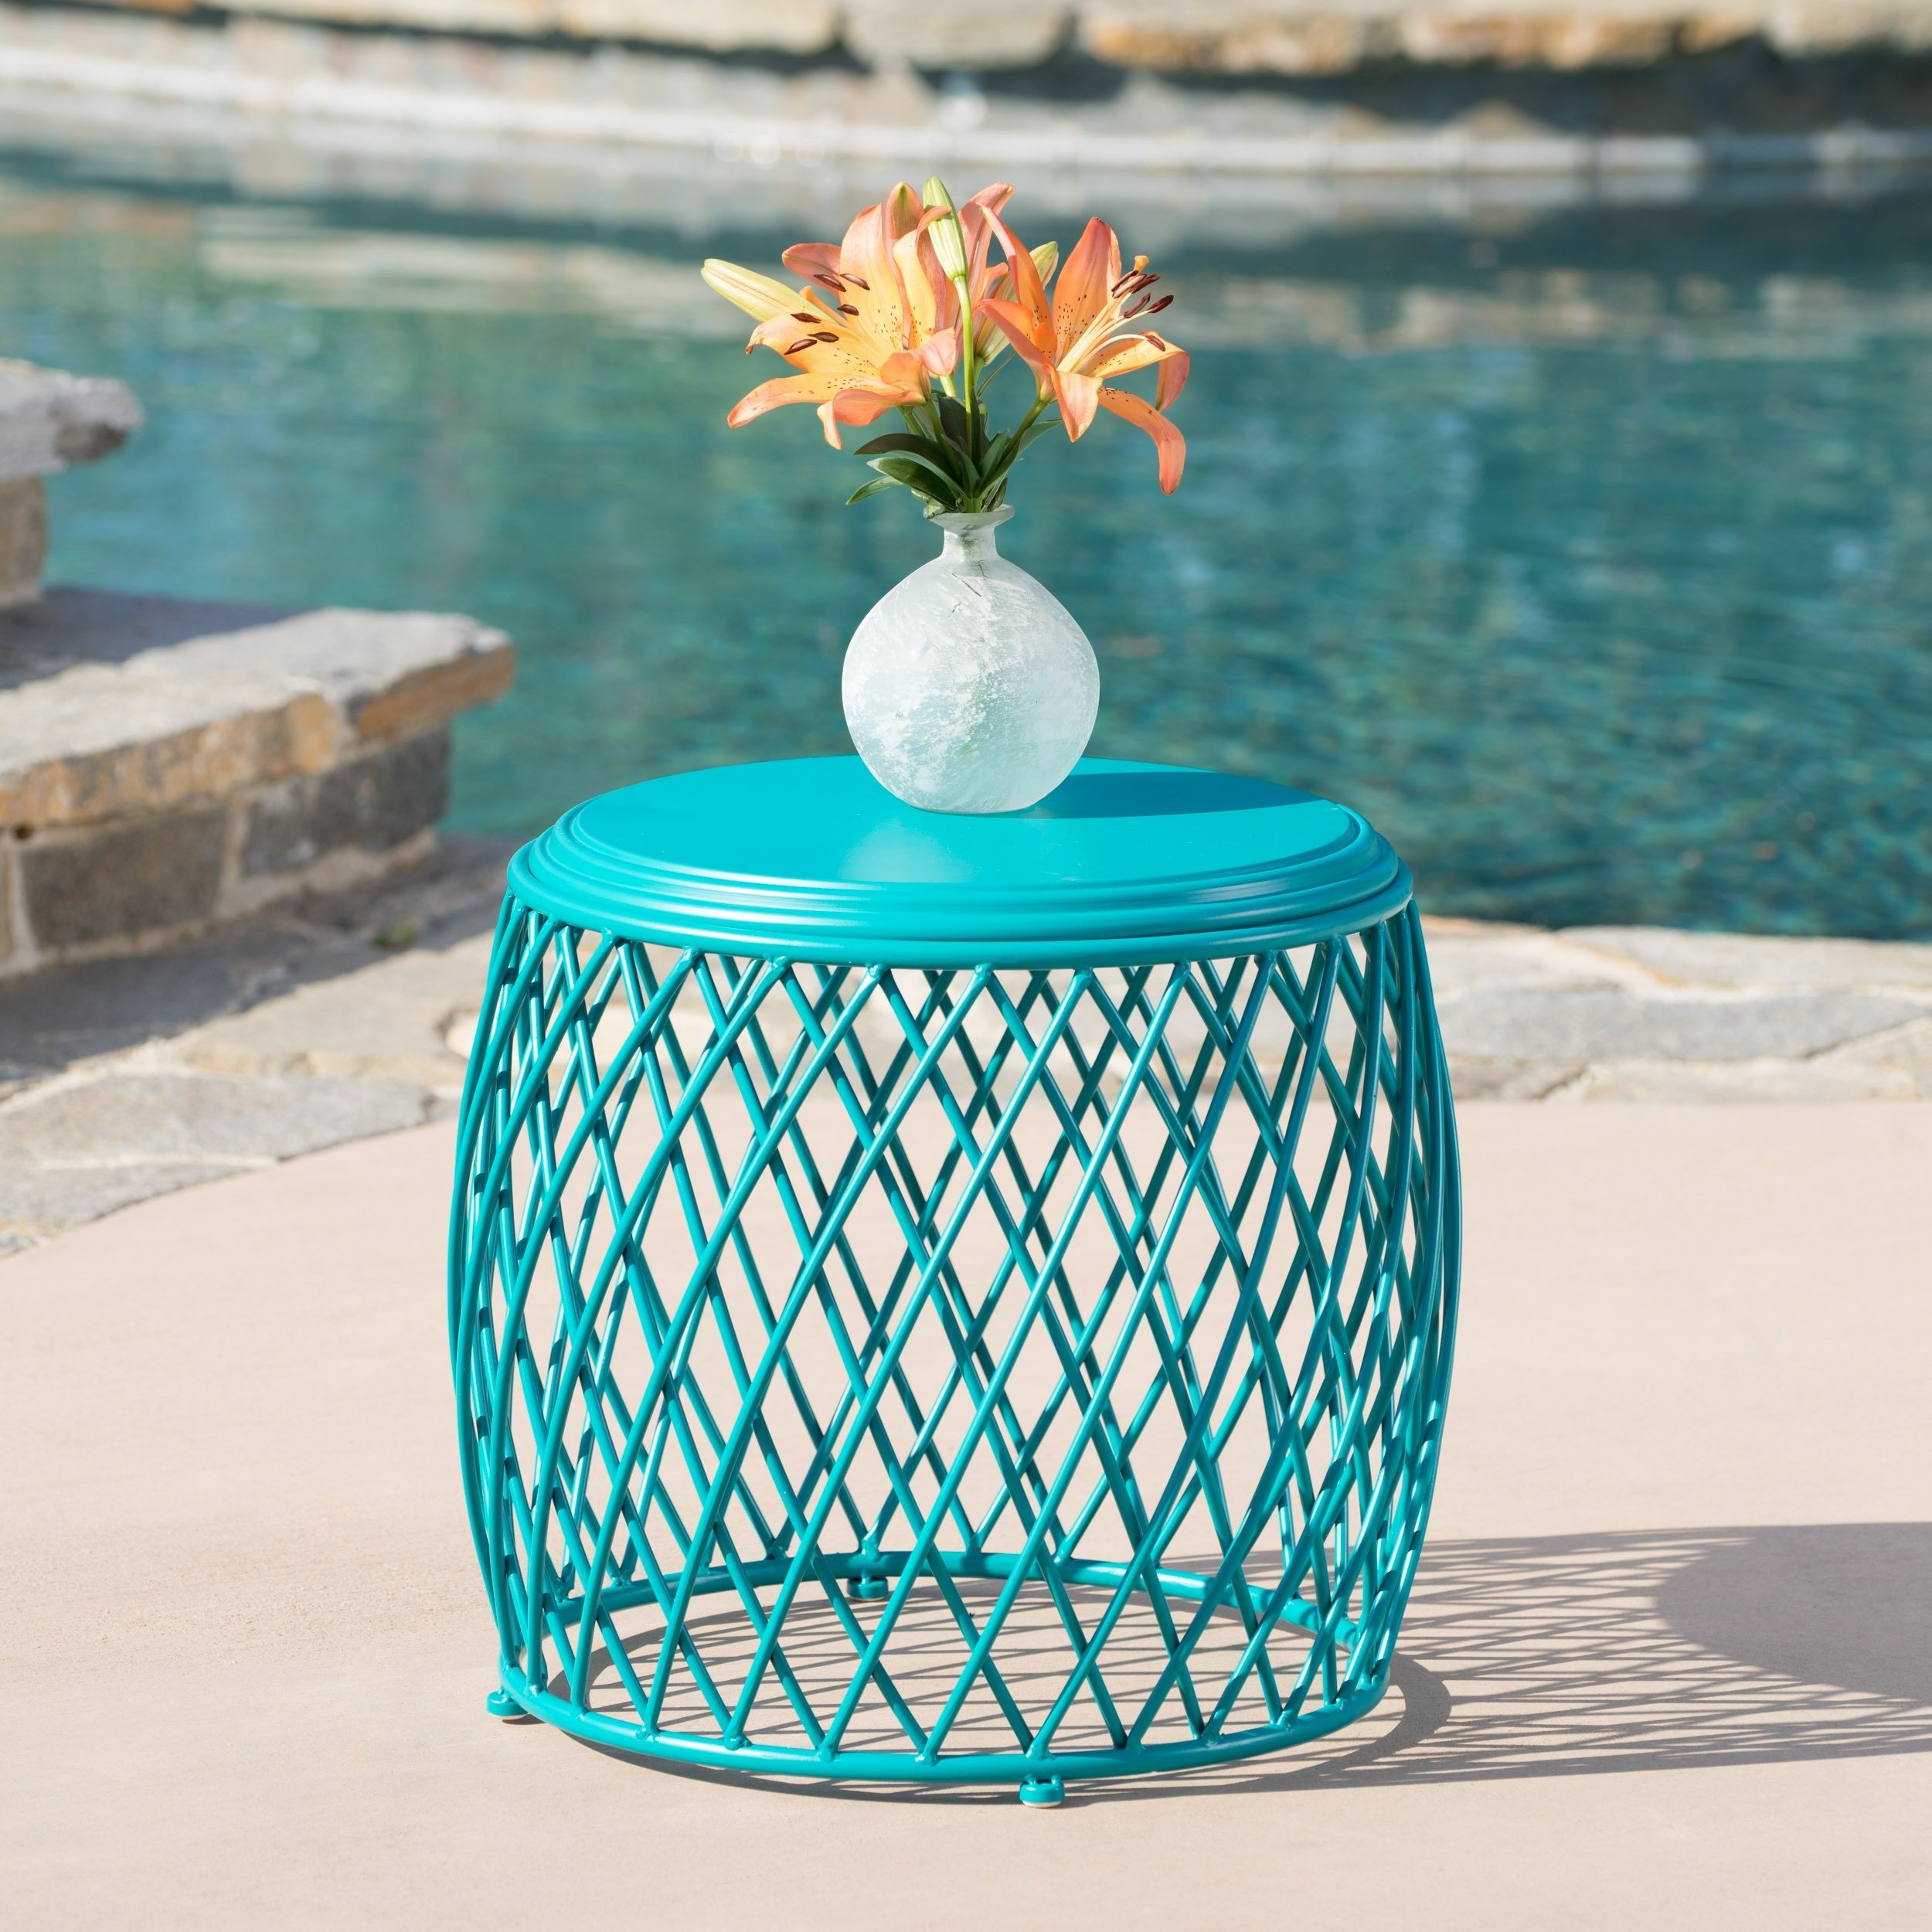 outdoor coffee side tables our best alamera inch lattice table christopher knight home wicker patio accent furniture williams sonoma floor lamp inexpensive chairs ikea cube